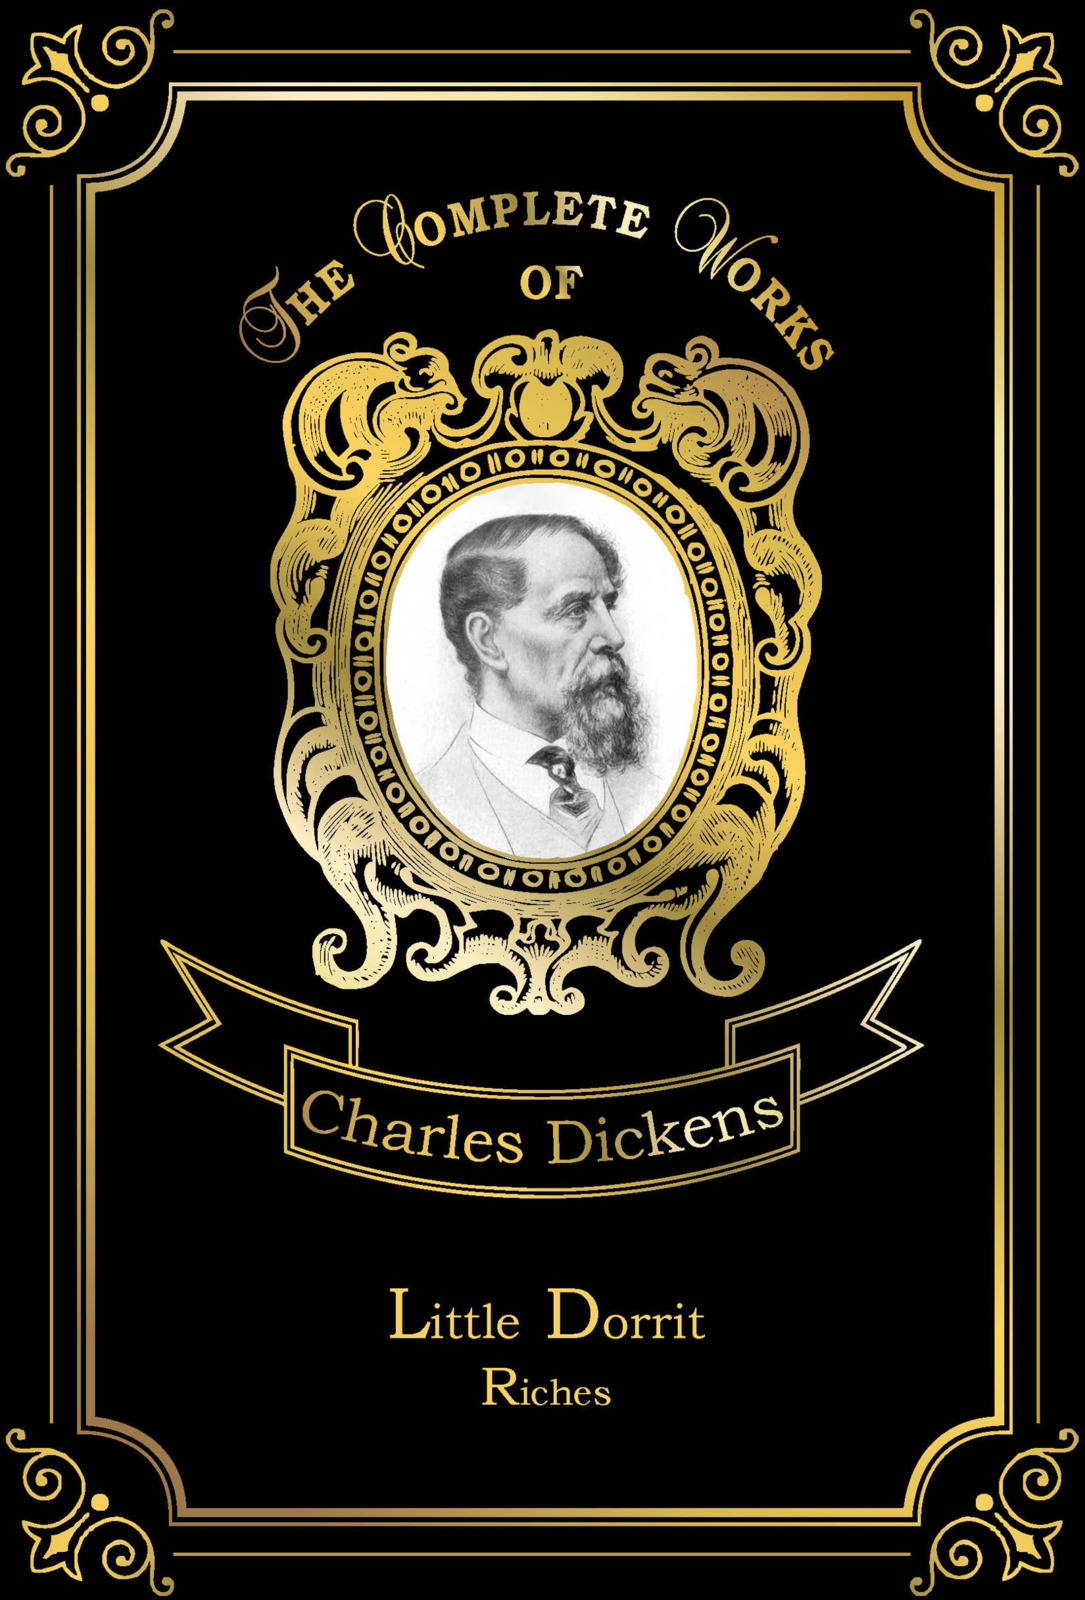 Charles Dickens Little Dorrit: Riches the financier